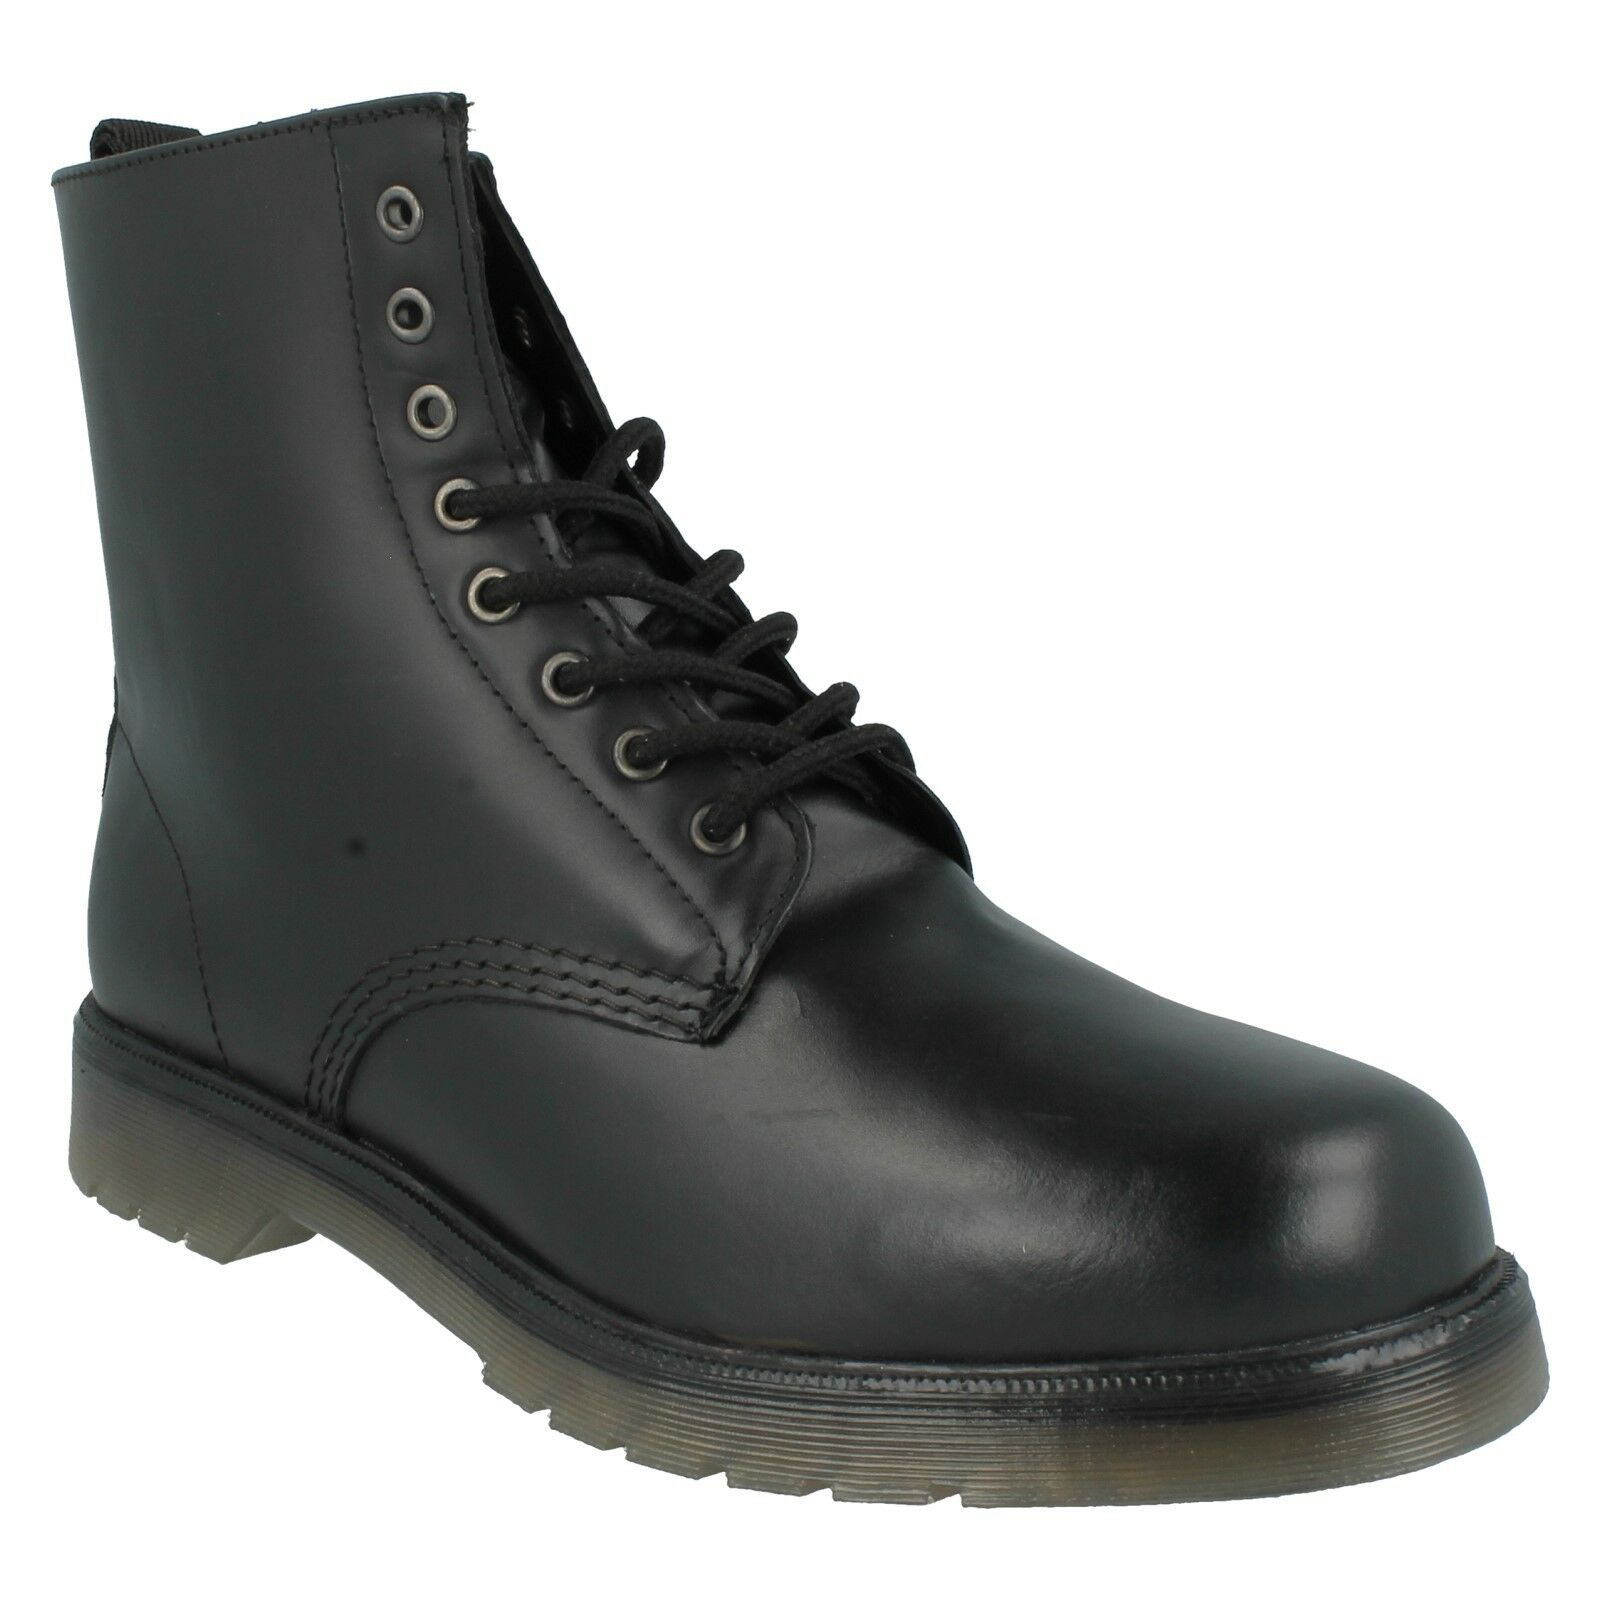 1900 MAVERICK Hombre MILITARY STYLE TOE LACE UP ANKLE ROUND TOE STYLE COMBAT LEATHER botas c38381